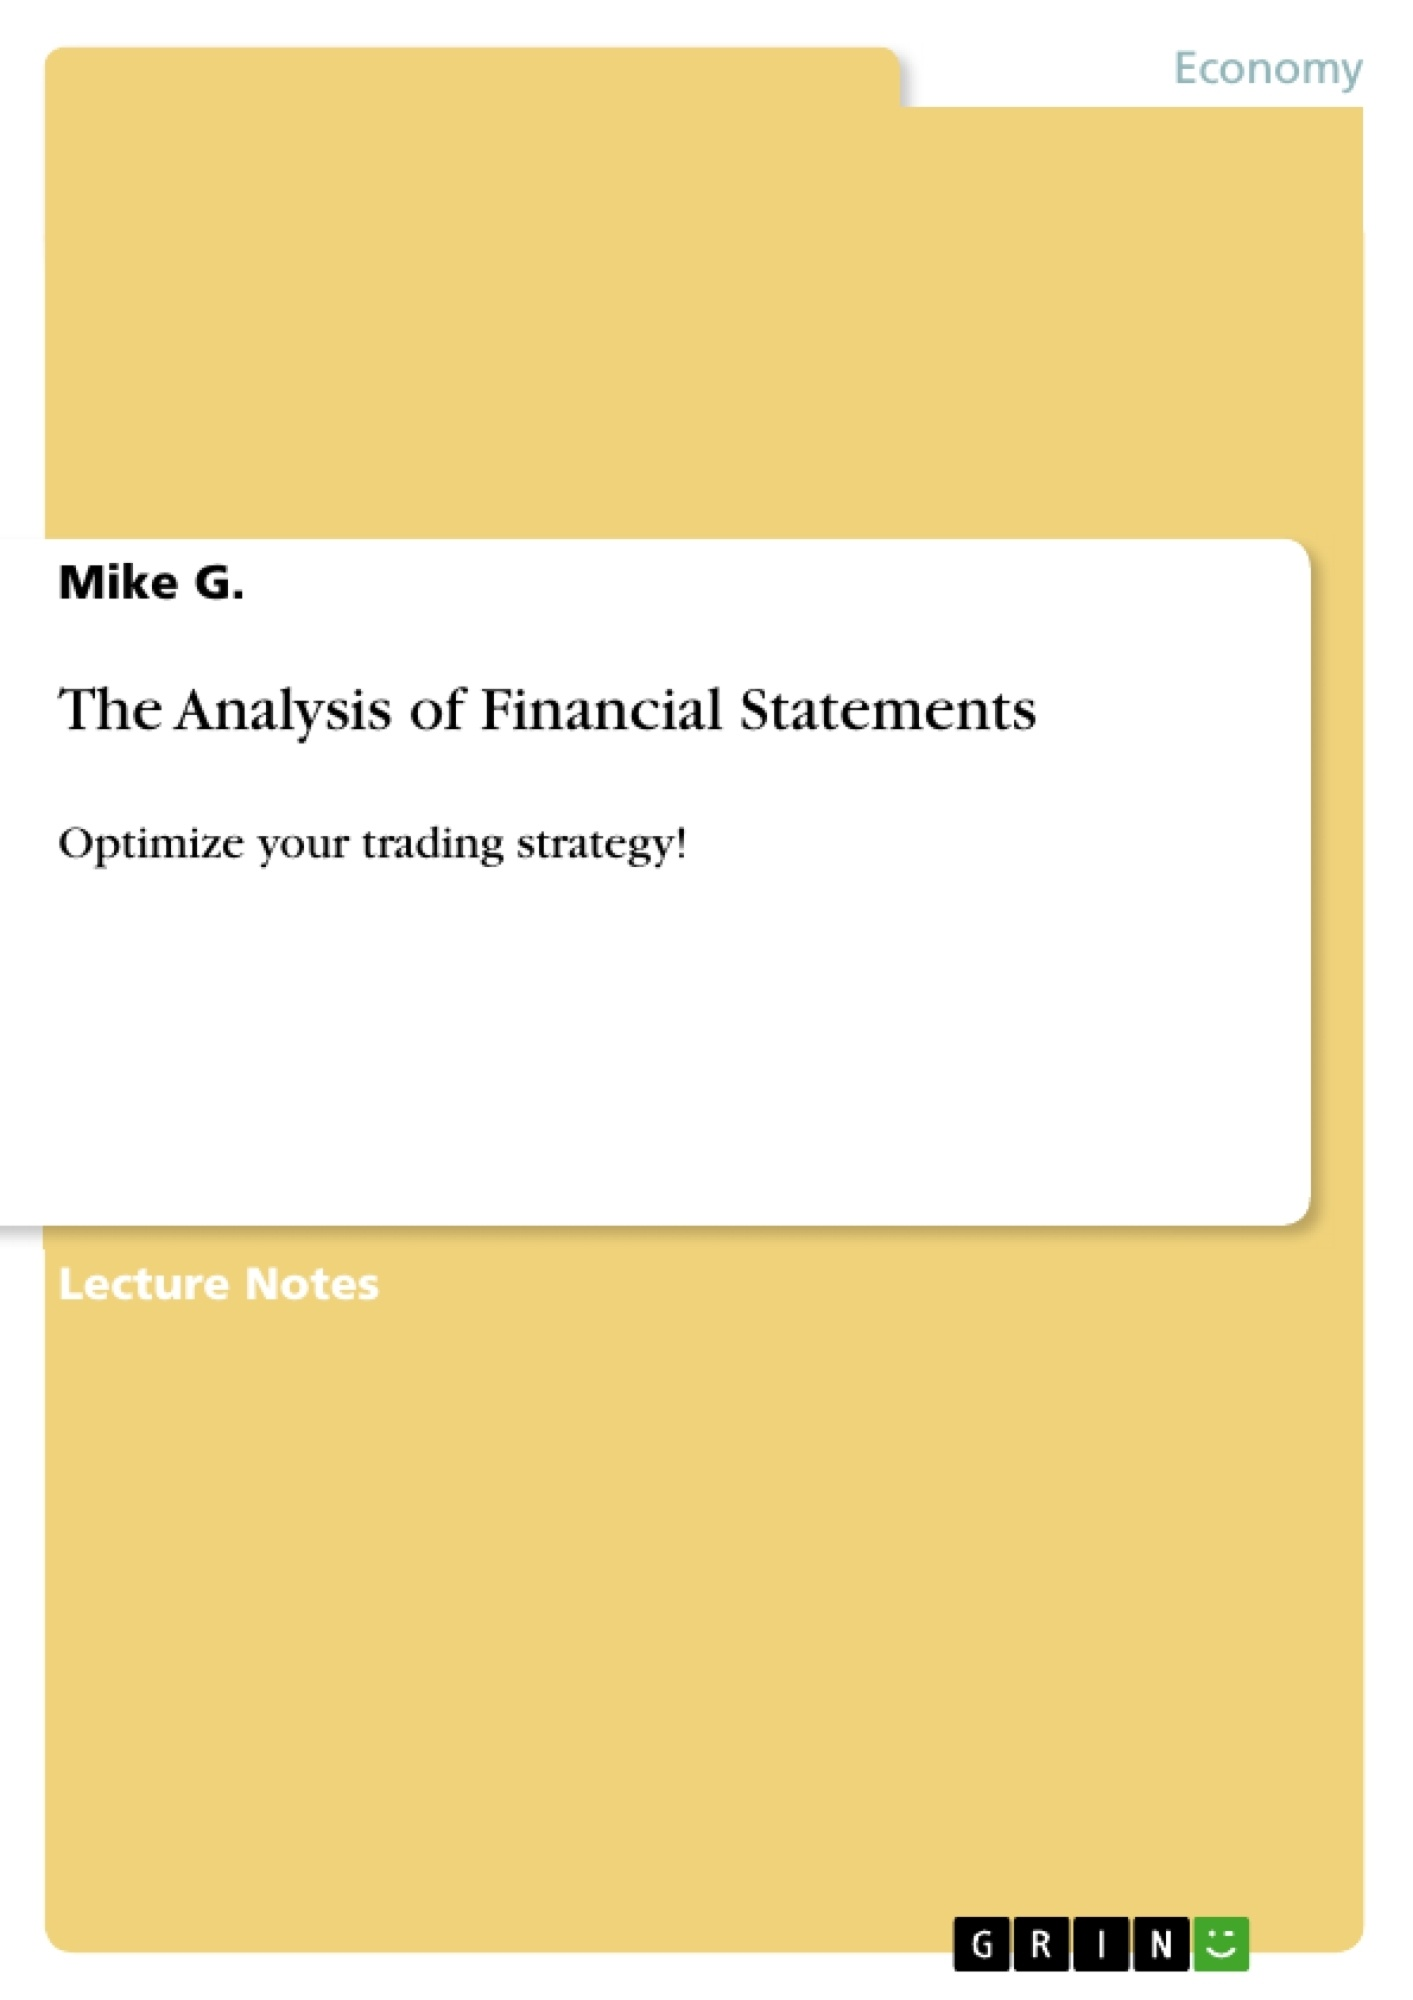 Title: The Analysis of Financial Statements